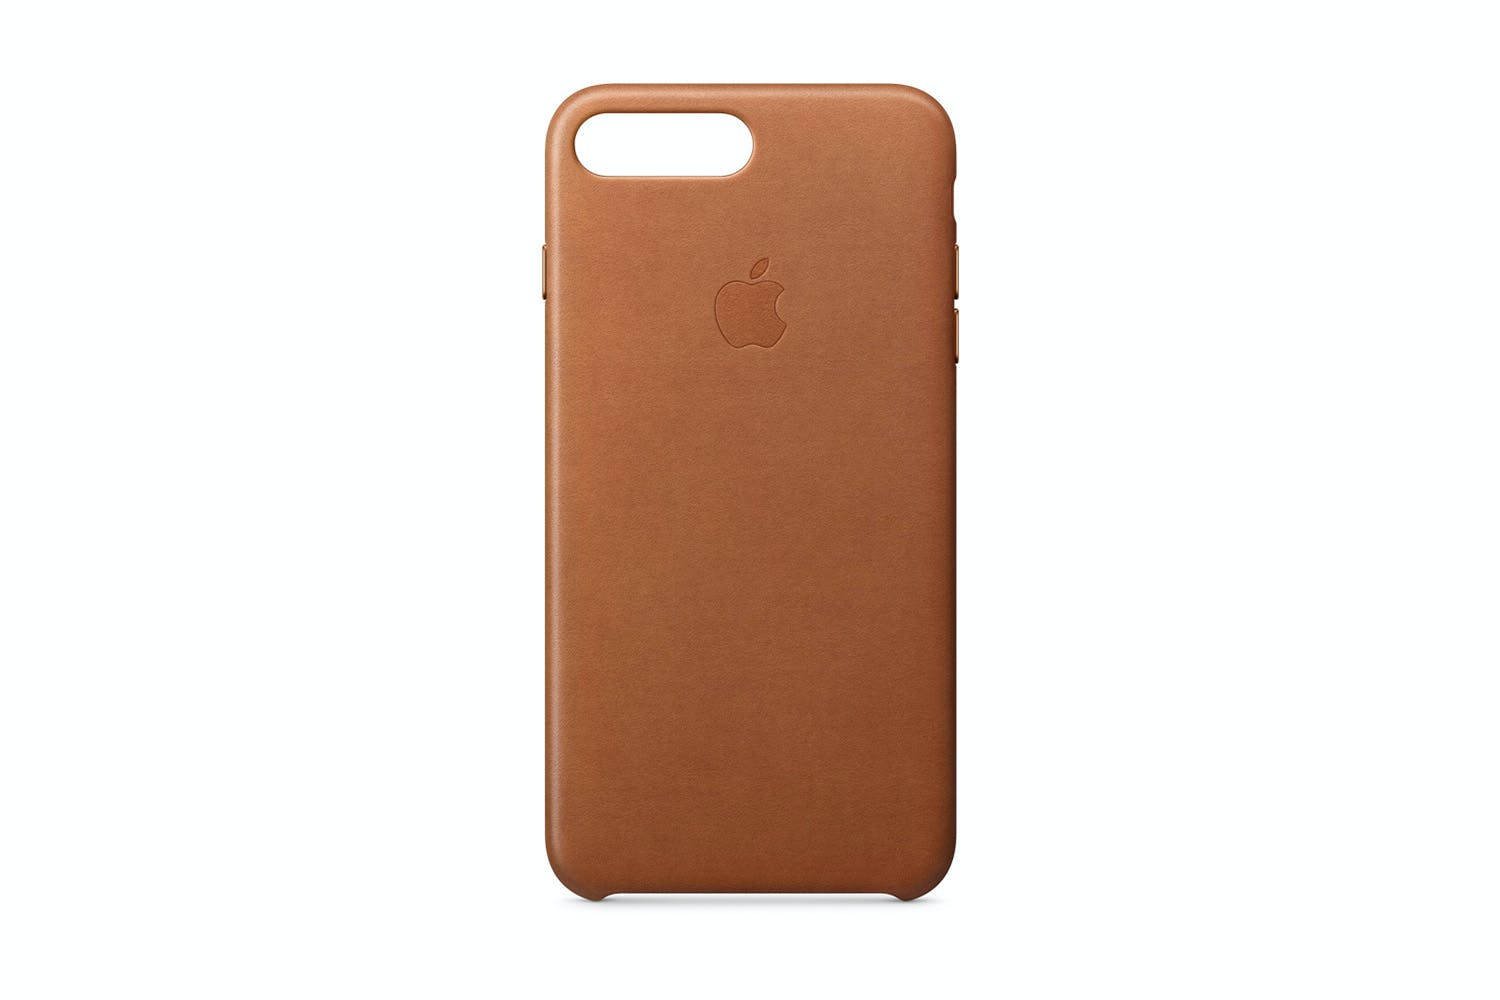 brand new 6a162 f8477 iPhone 8/7 Plus Leather Case | Saddle Brown